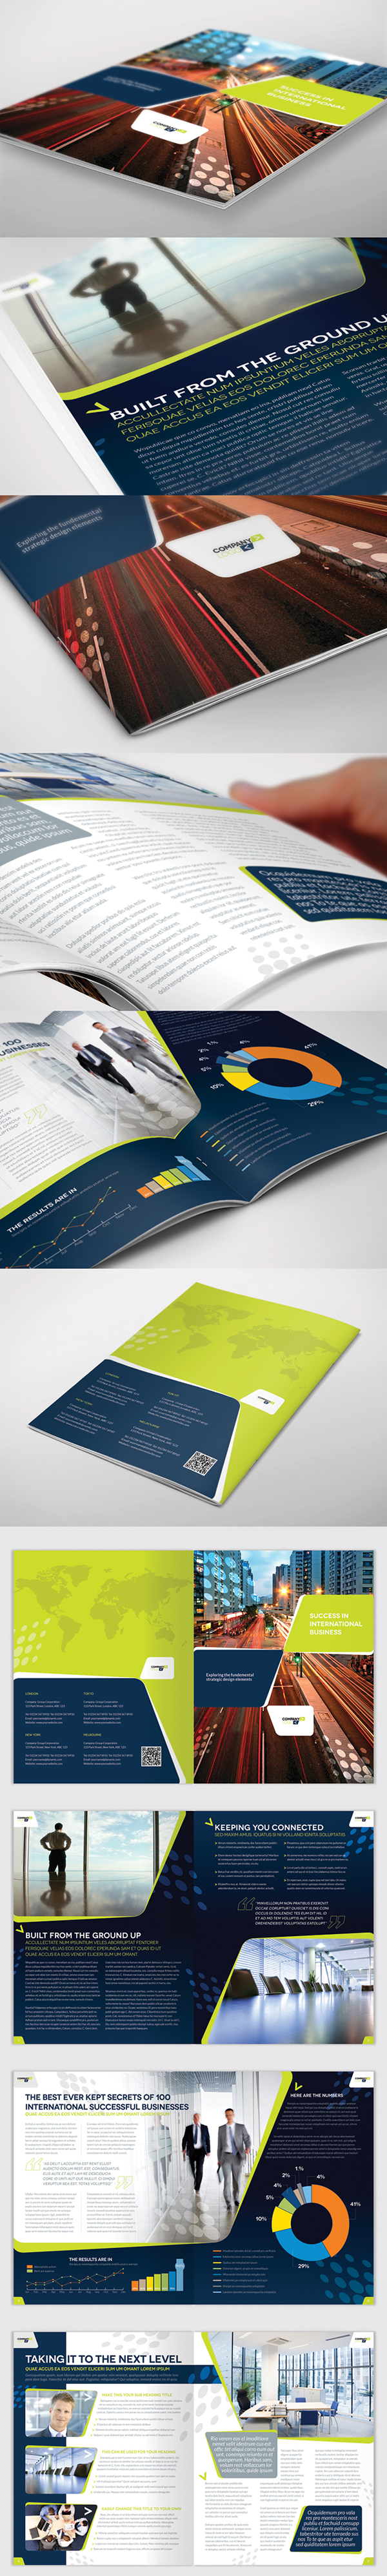 Brochure Template InDesign Page Layout On Behance - 8 page brochure template